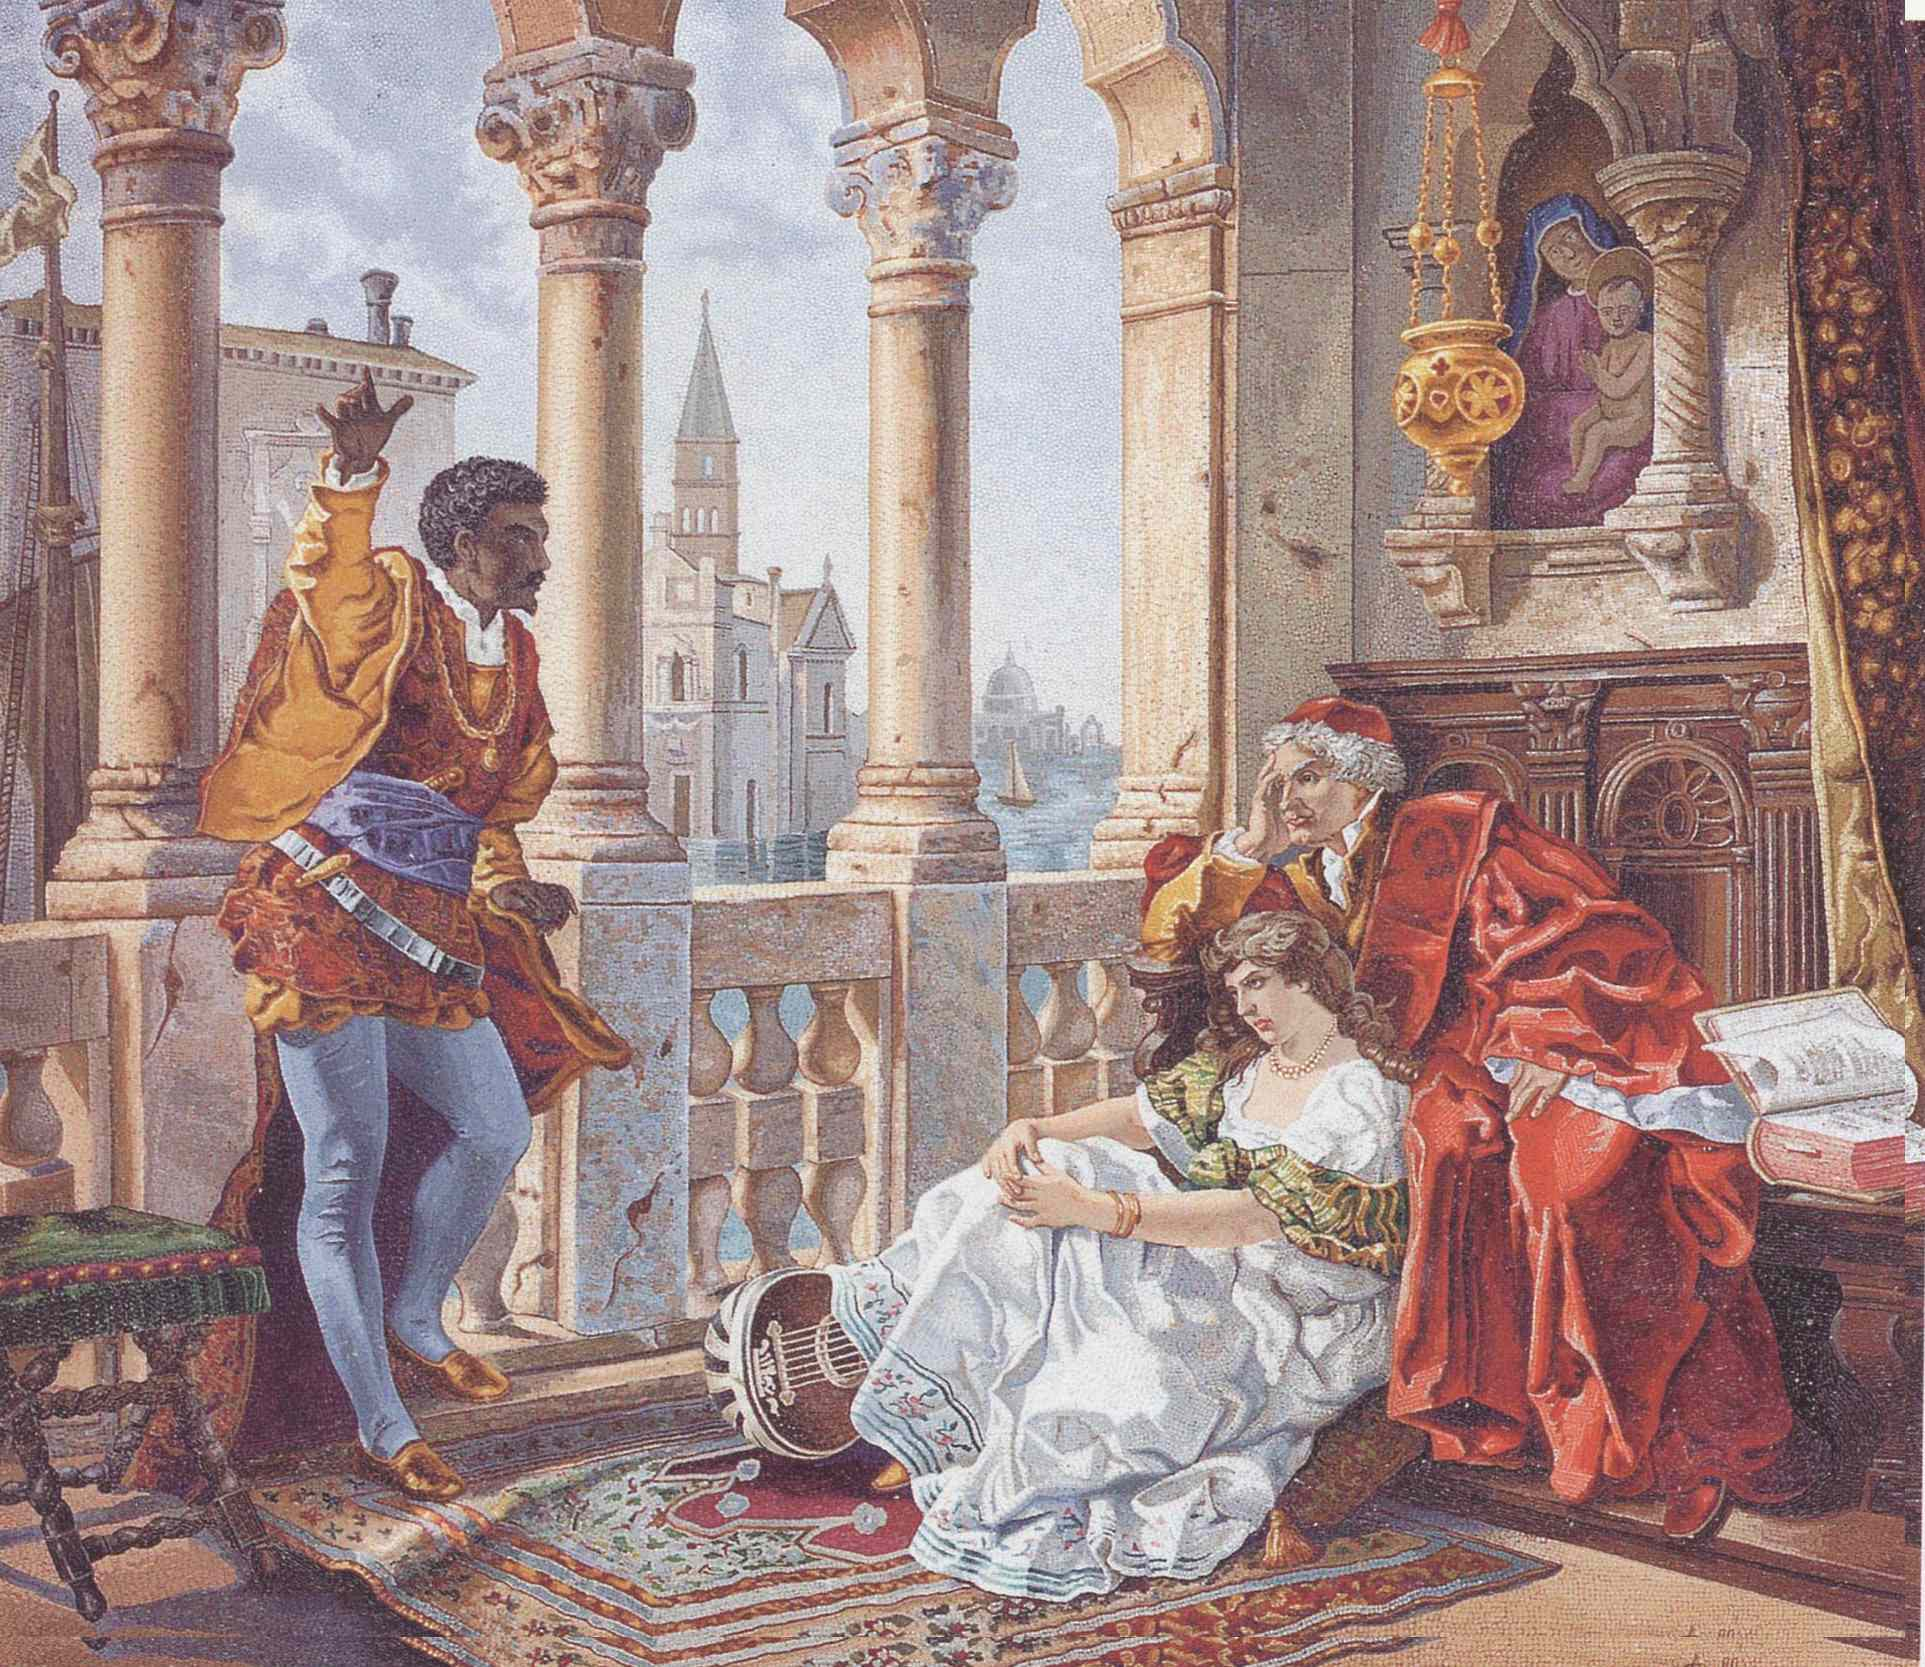 the importance of lago in william shakespeares othello Need writing othello and lago evilness essay use our paper writing services or get access to database of 863 free essays samples about othello and lago evilness.